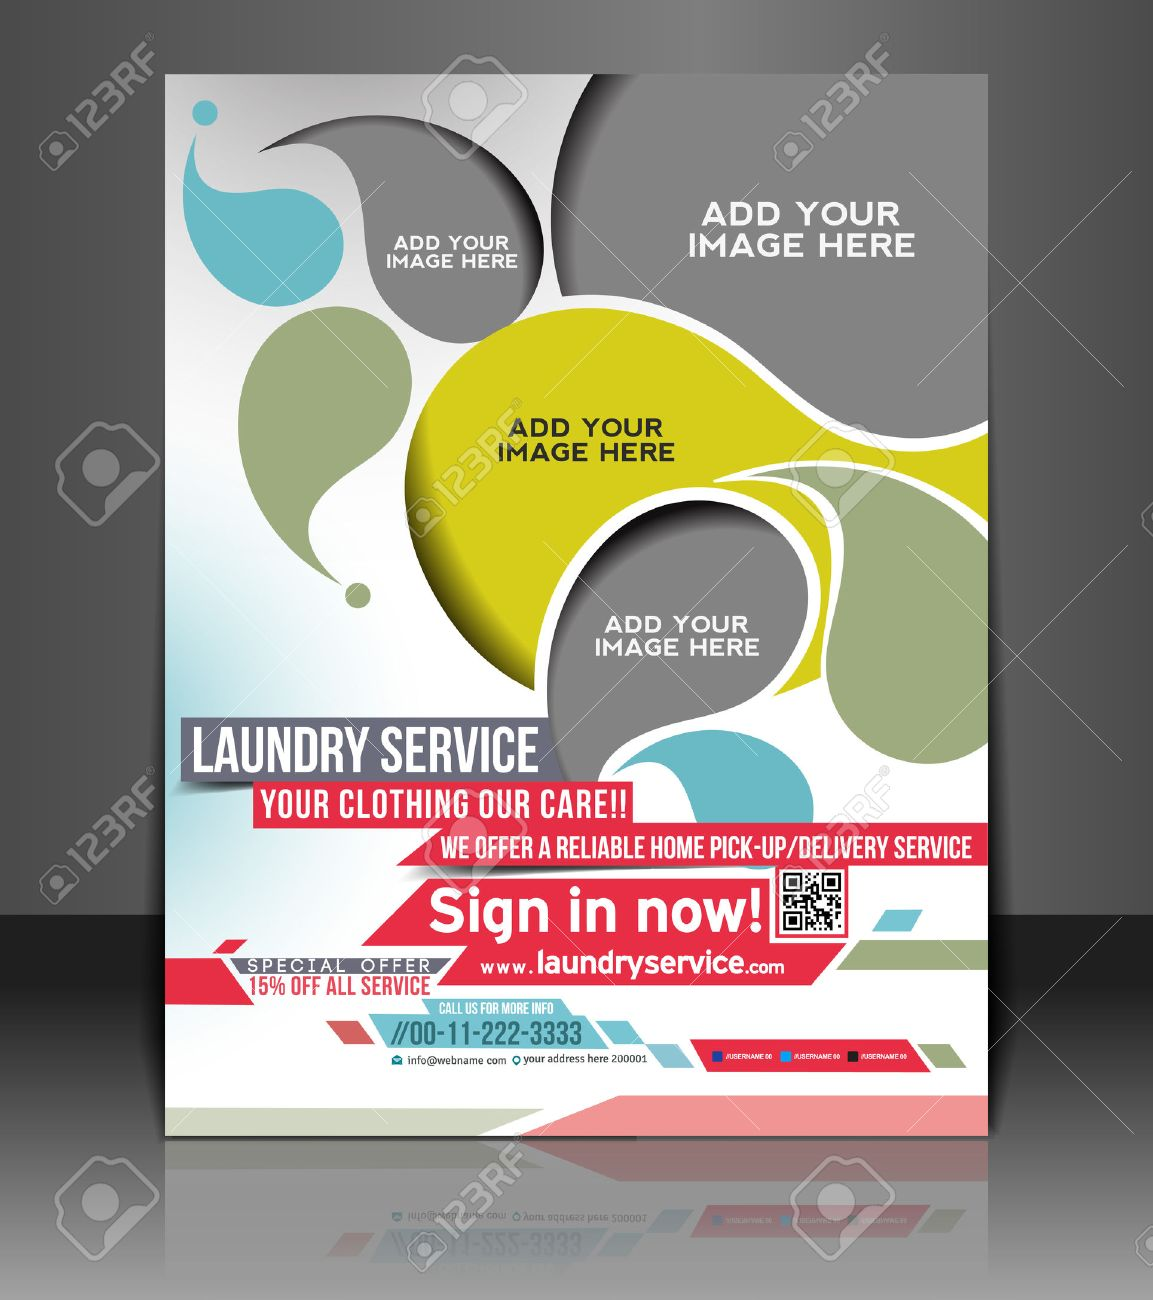 Laundry service flyer poster template design royalty free laundry service flyer poster template design stock vector 26787704 pronofoot35fo Image collections